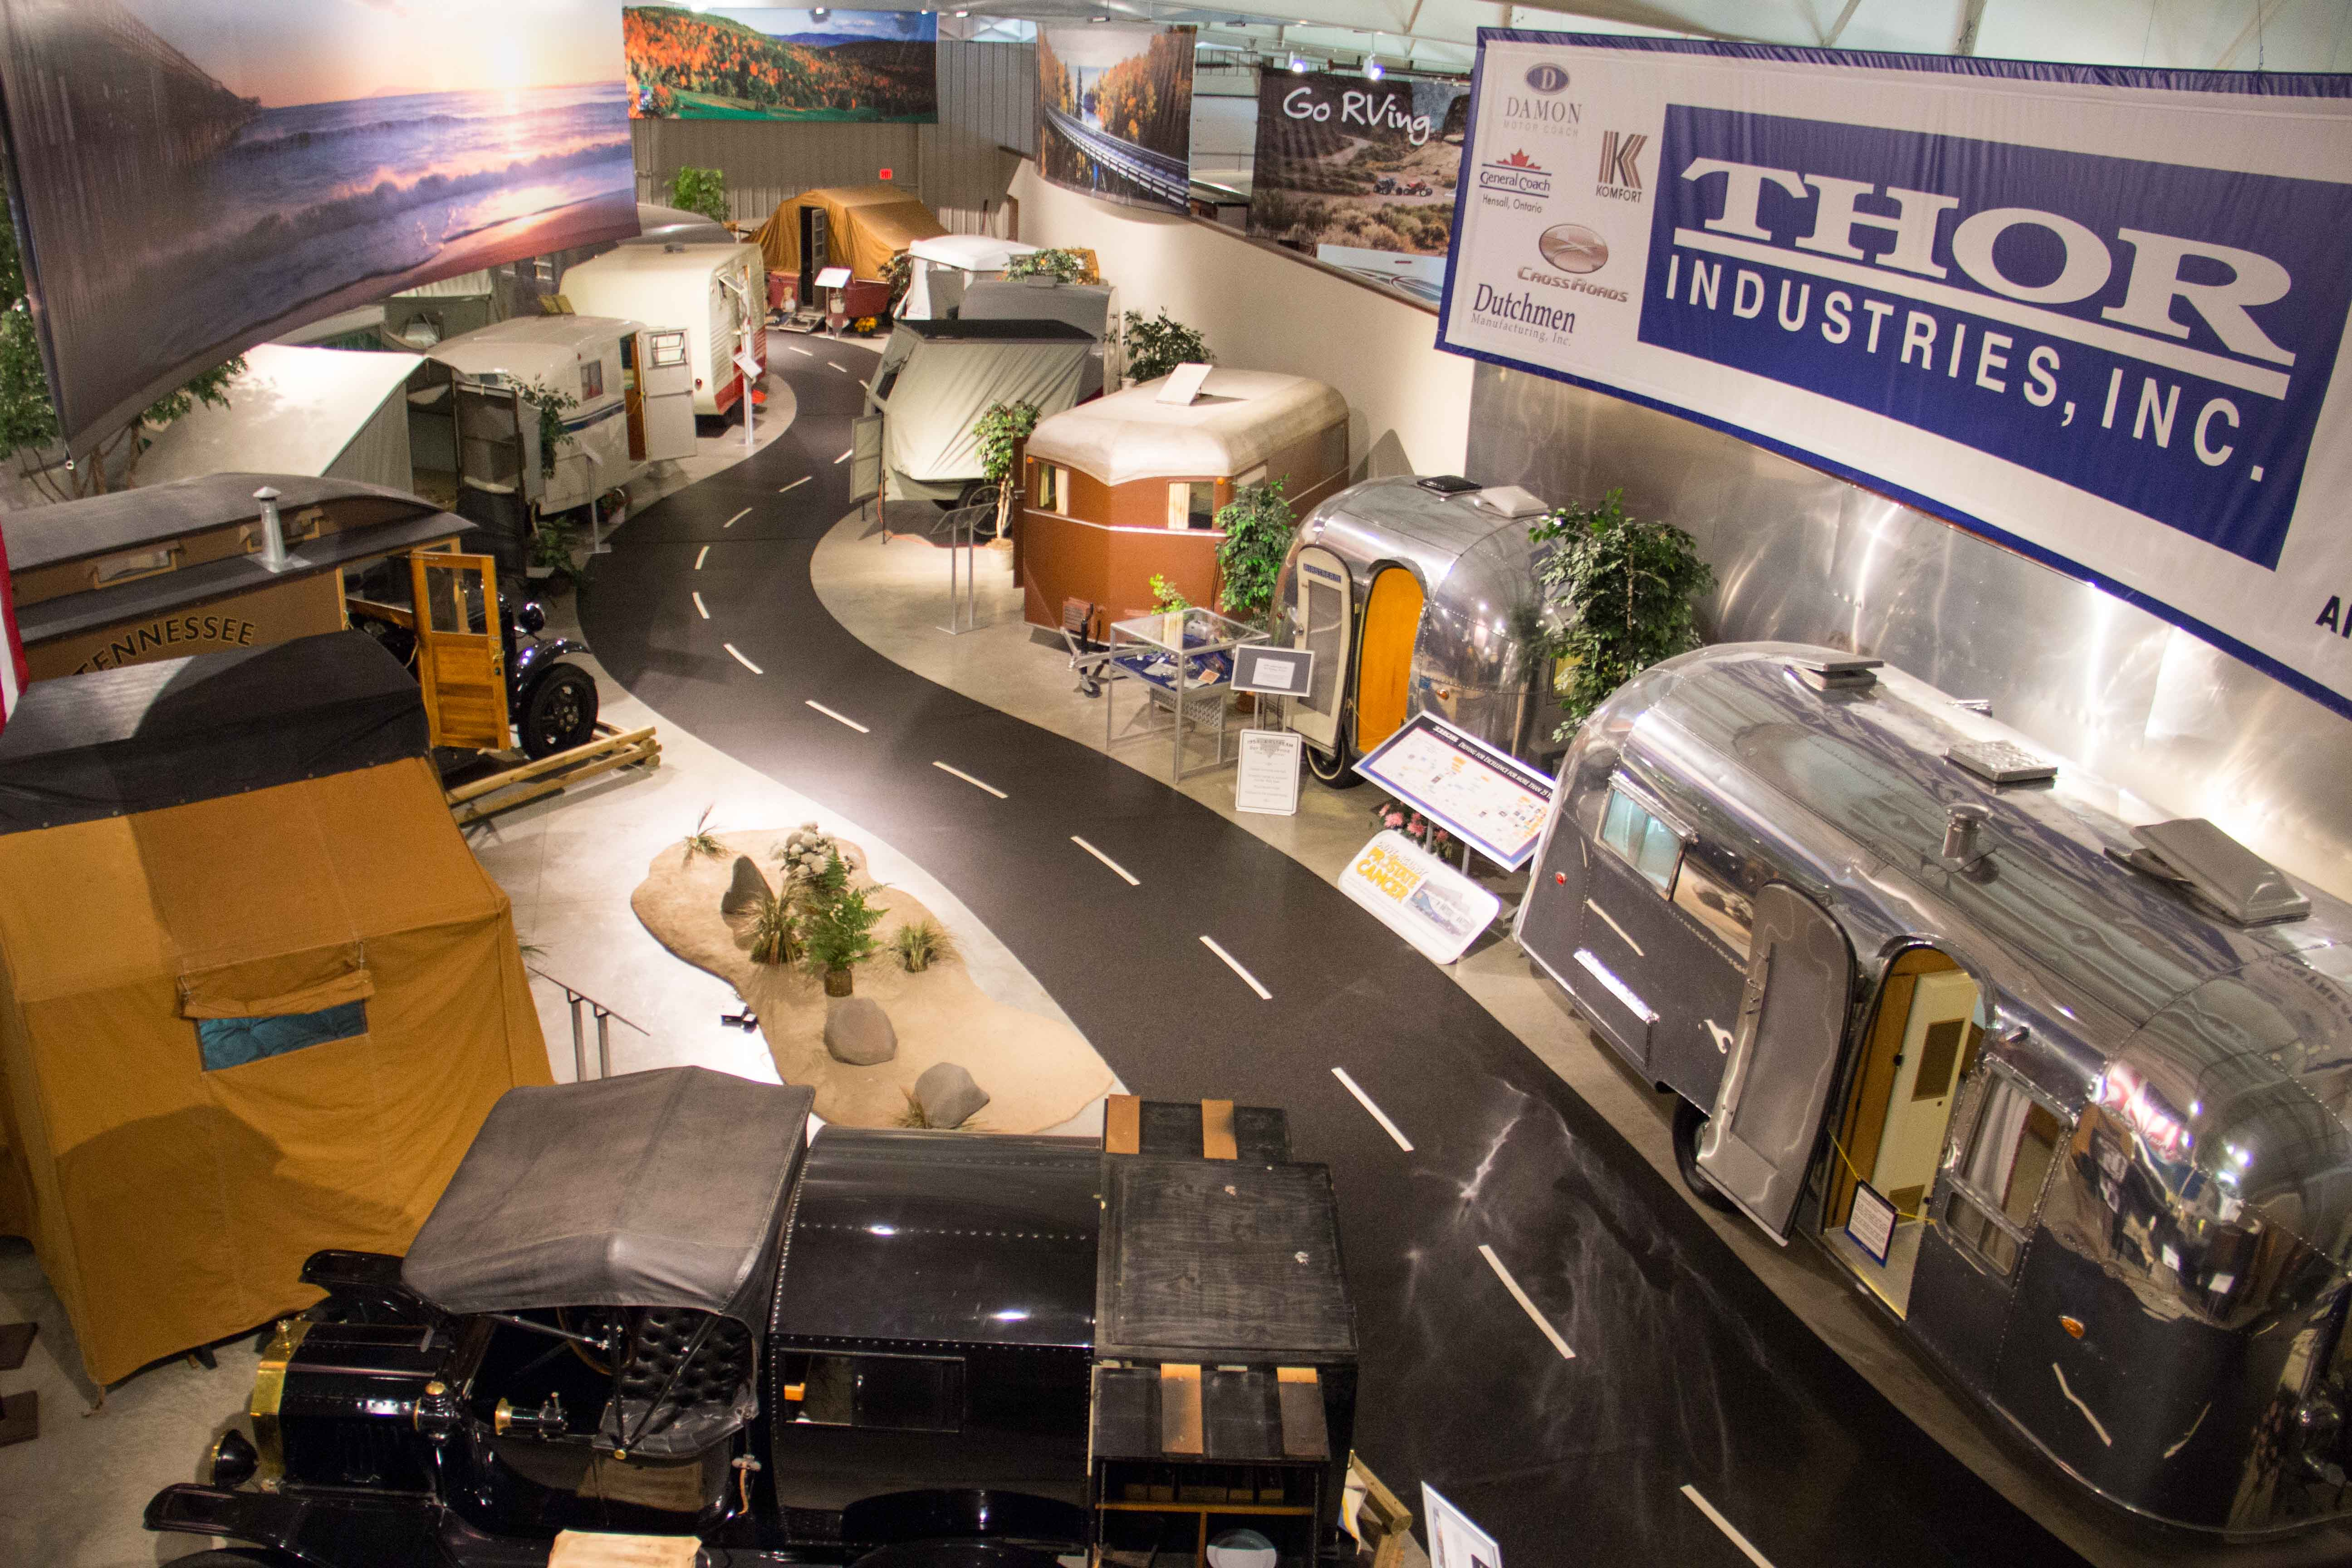 Rv Hall Of Fame >> Rv Mh Hall Of Fame Exhibits Campers Of Yesteryear Midwest Wanderer